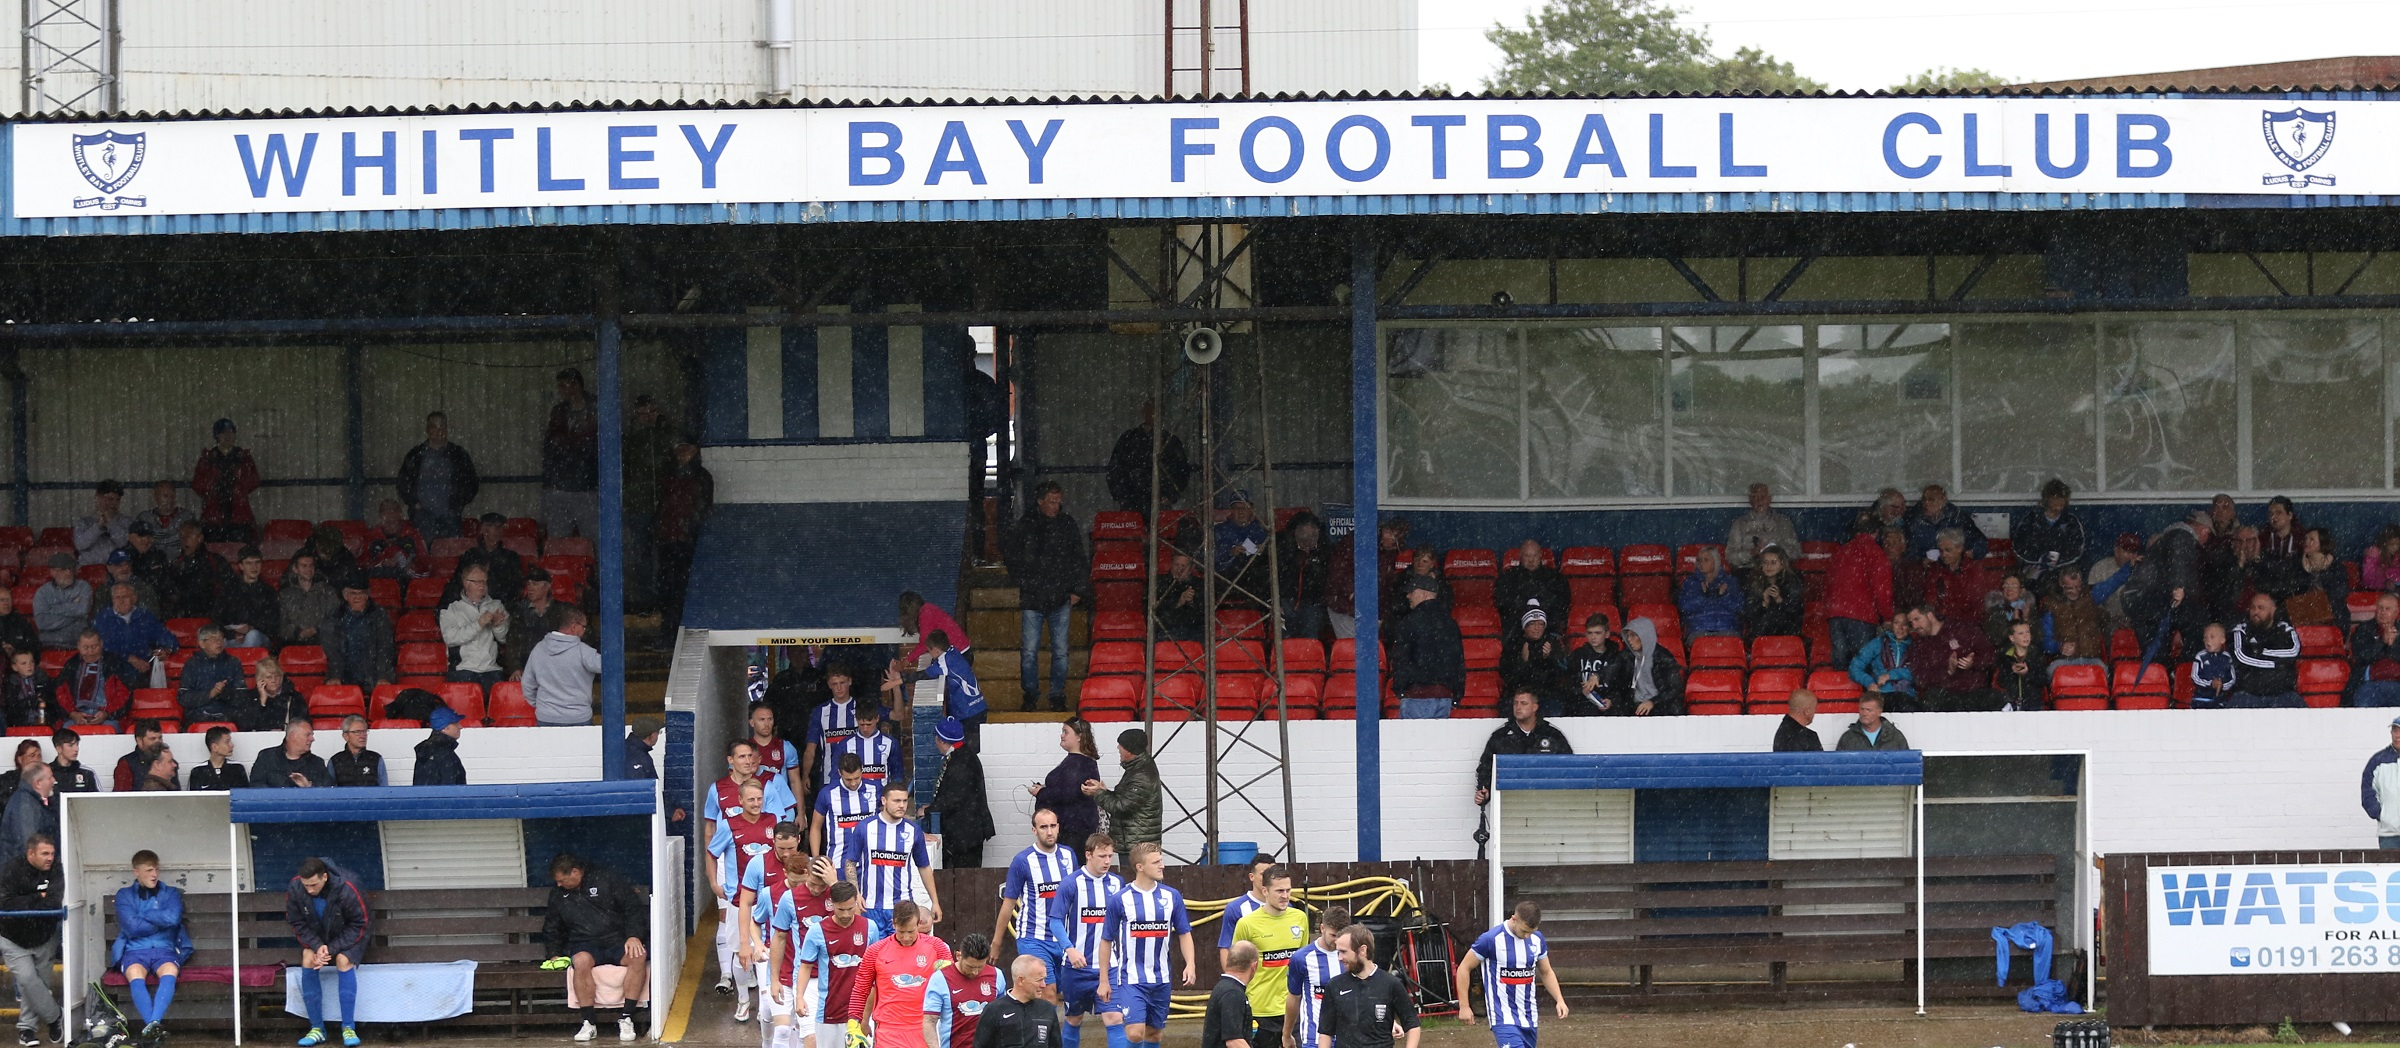 Northern League Cup derby to take place at Whitley Bay's Hillheads